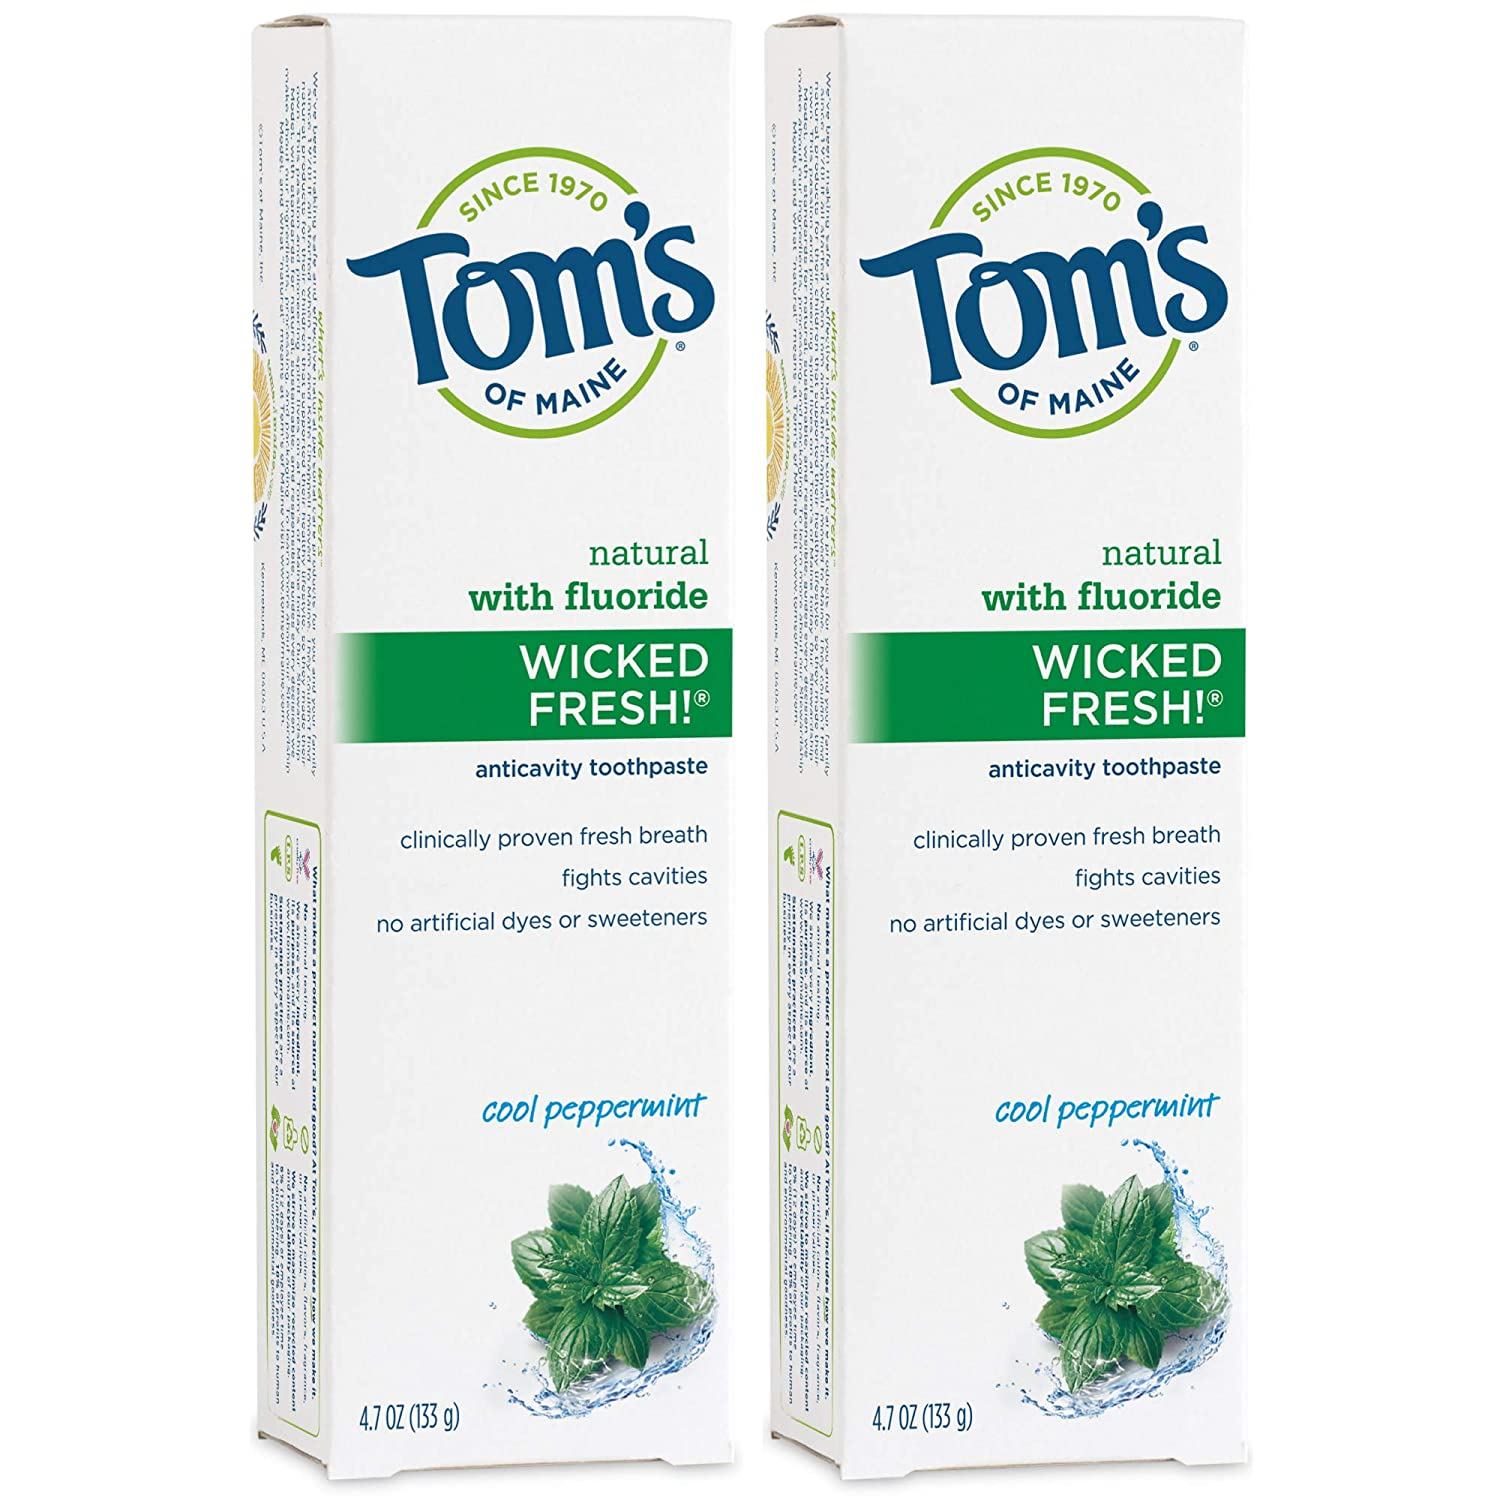 Tom's of Maine Natural Wicked Fresh Fluoride Toothpaste, Natural Toothpaste, Toothpaste, Cool Peppermint, 4.7 Ounce, 2-Pack